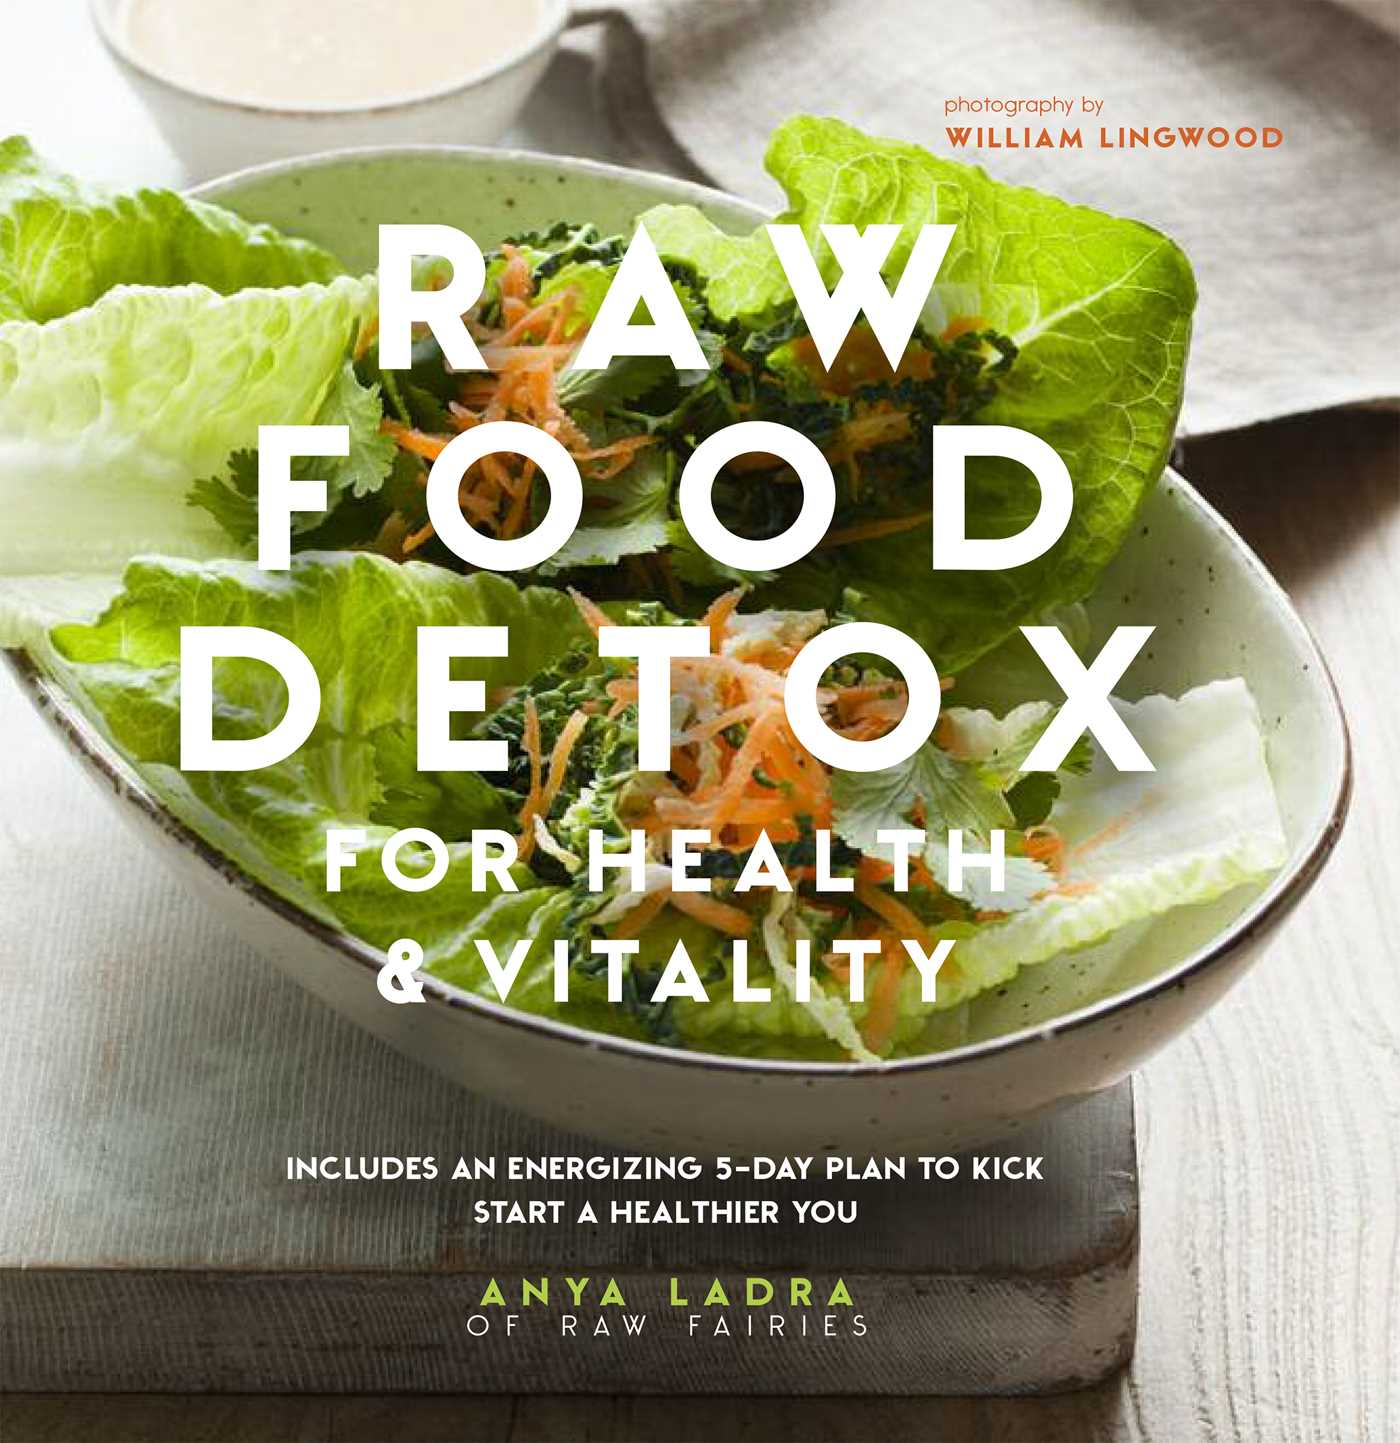 Raw food detox for health and vitality book by anya ladra raw food detox for health and vitality 9781849757287 hr forumfinder Choice Image